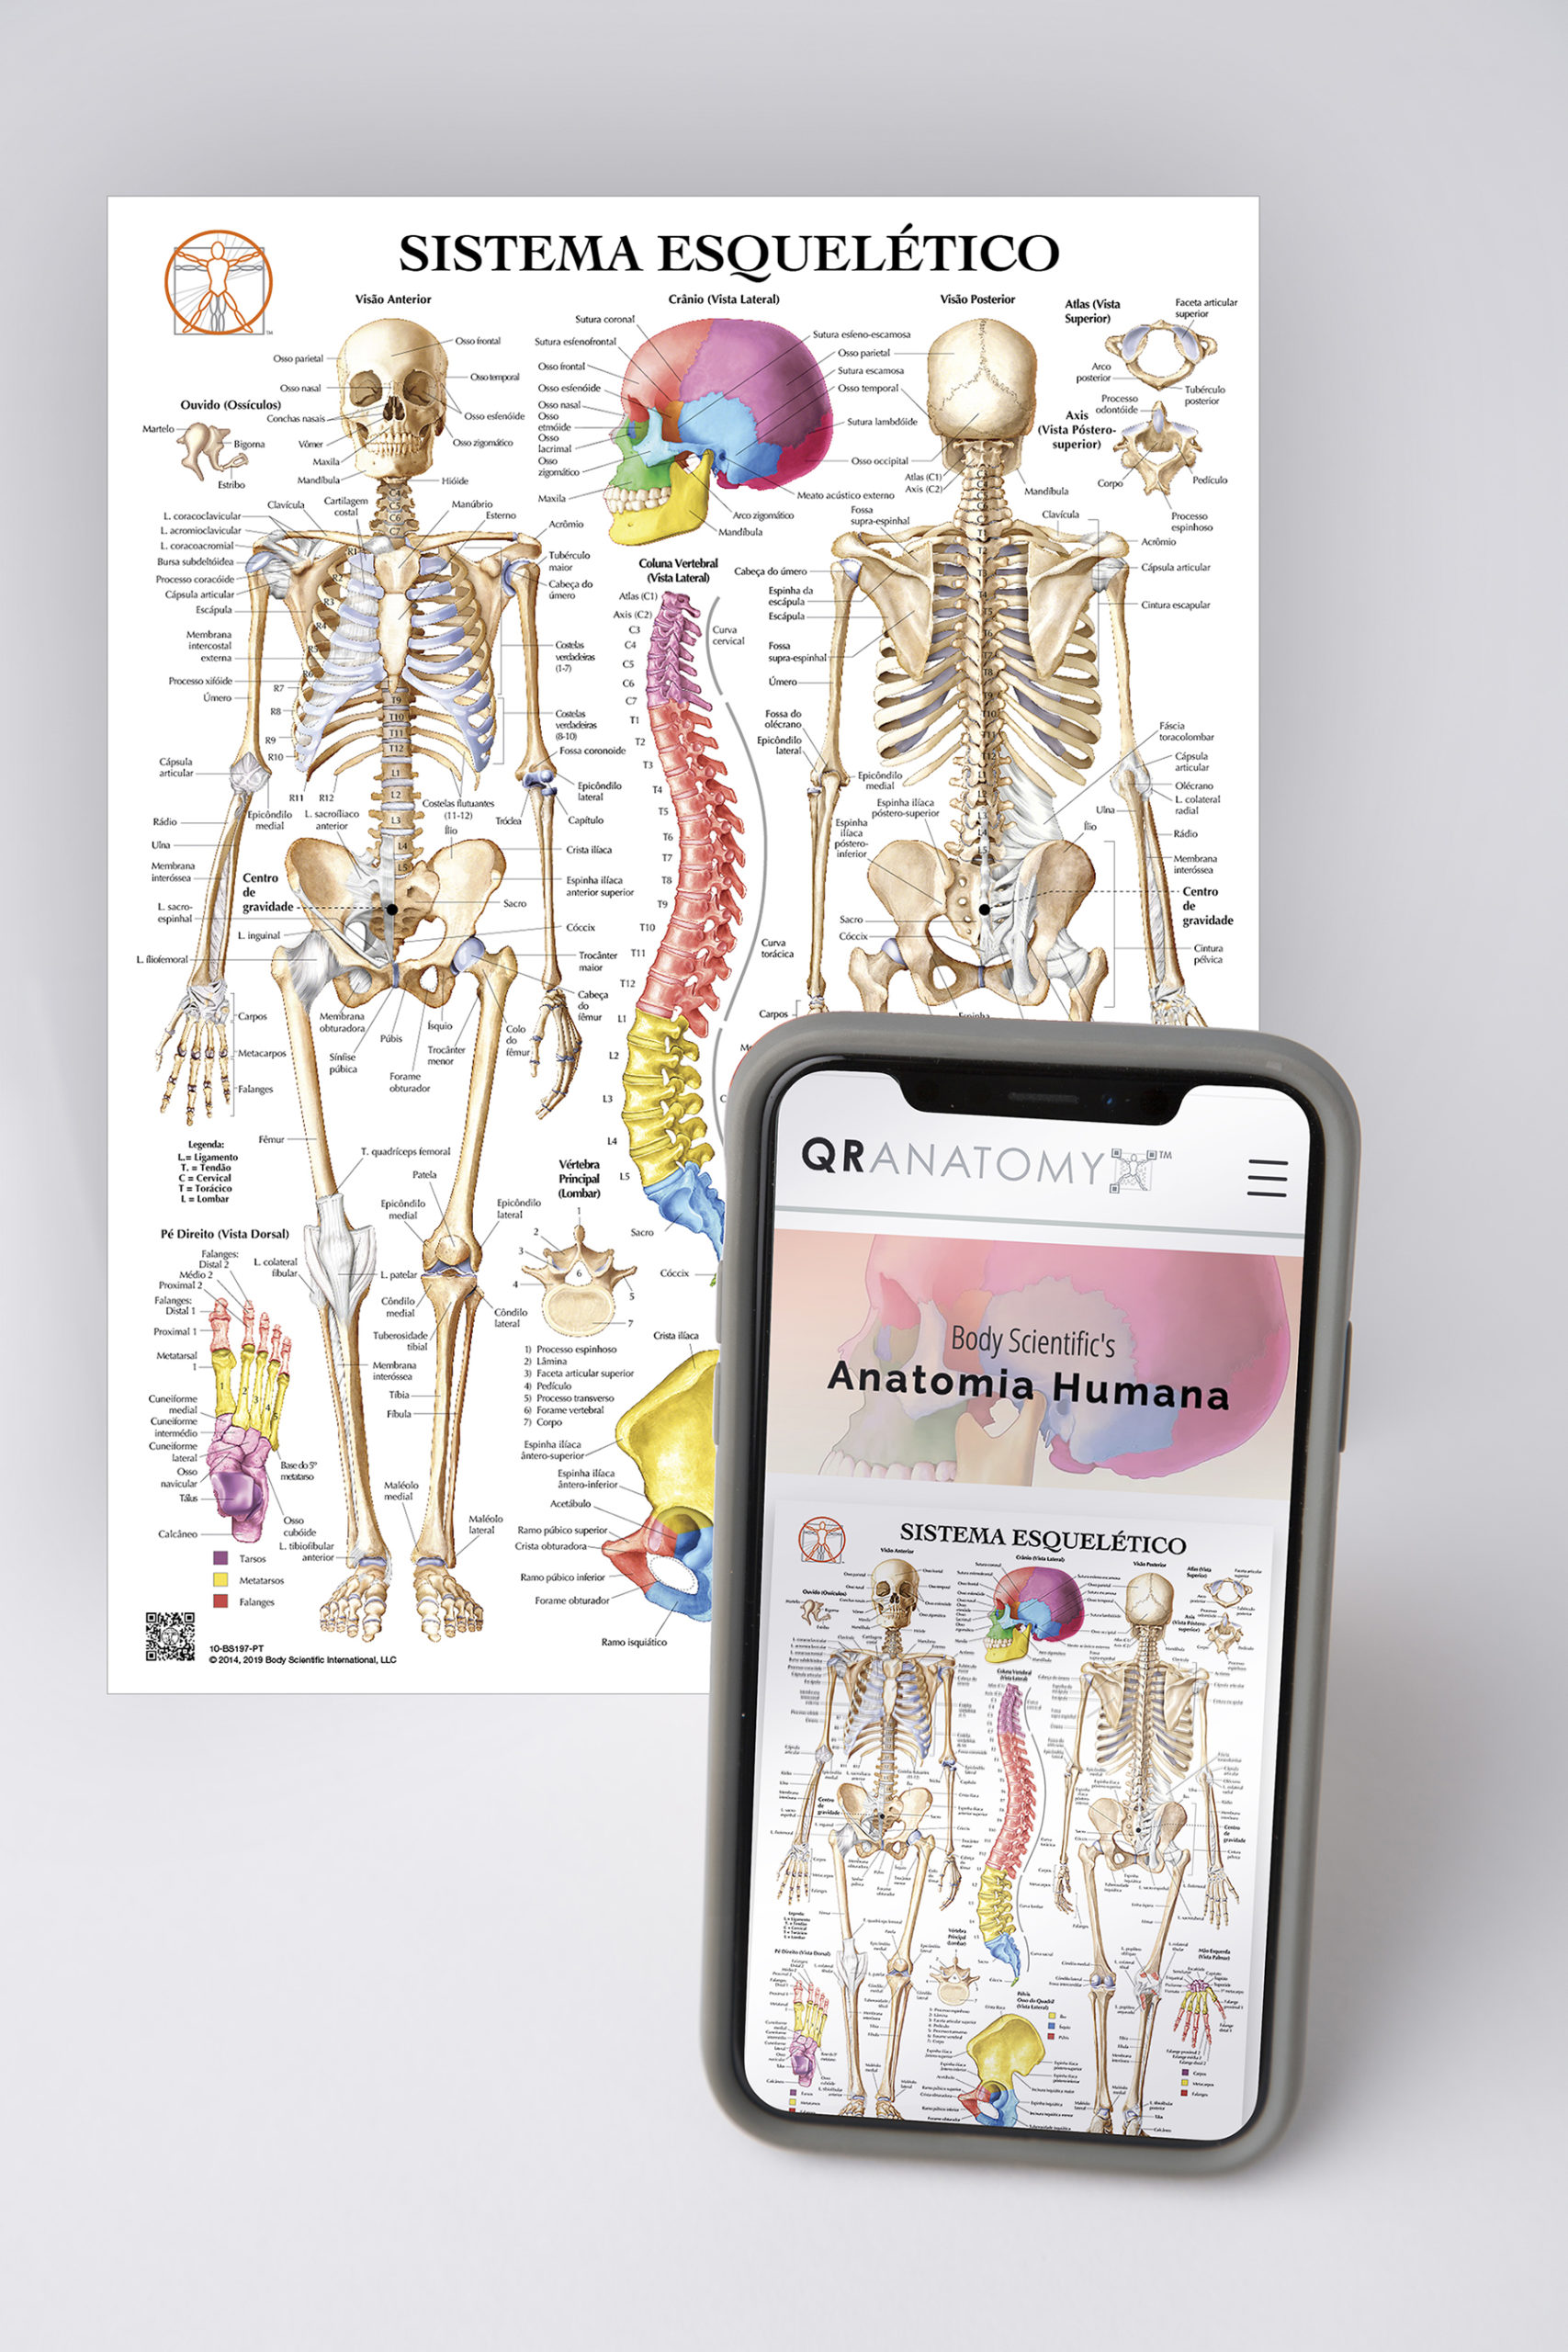 QR iphone in front of anatomy diagram